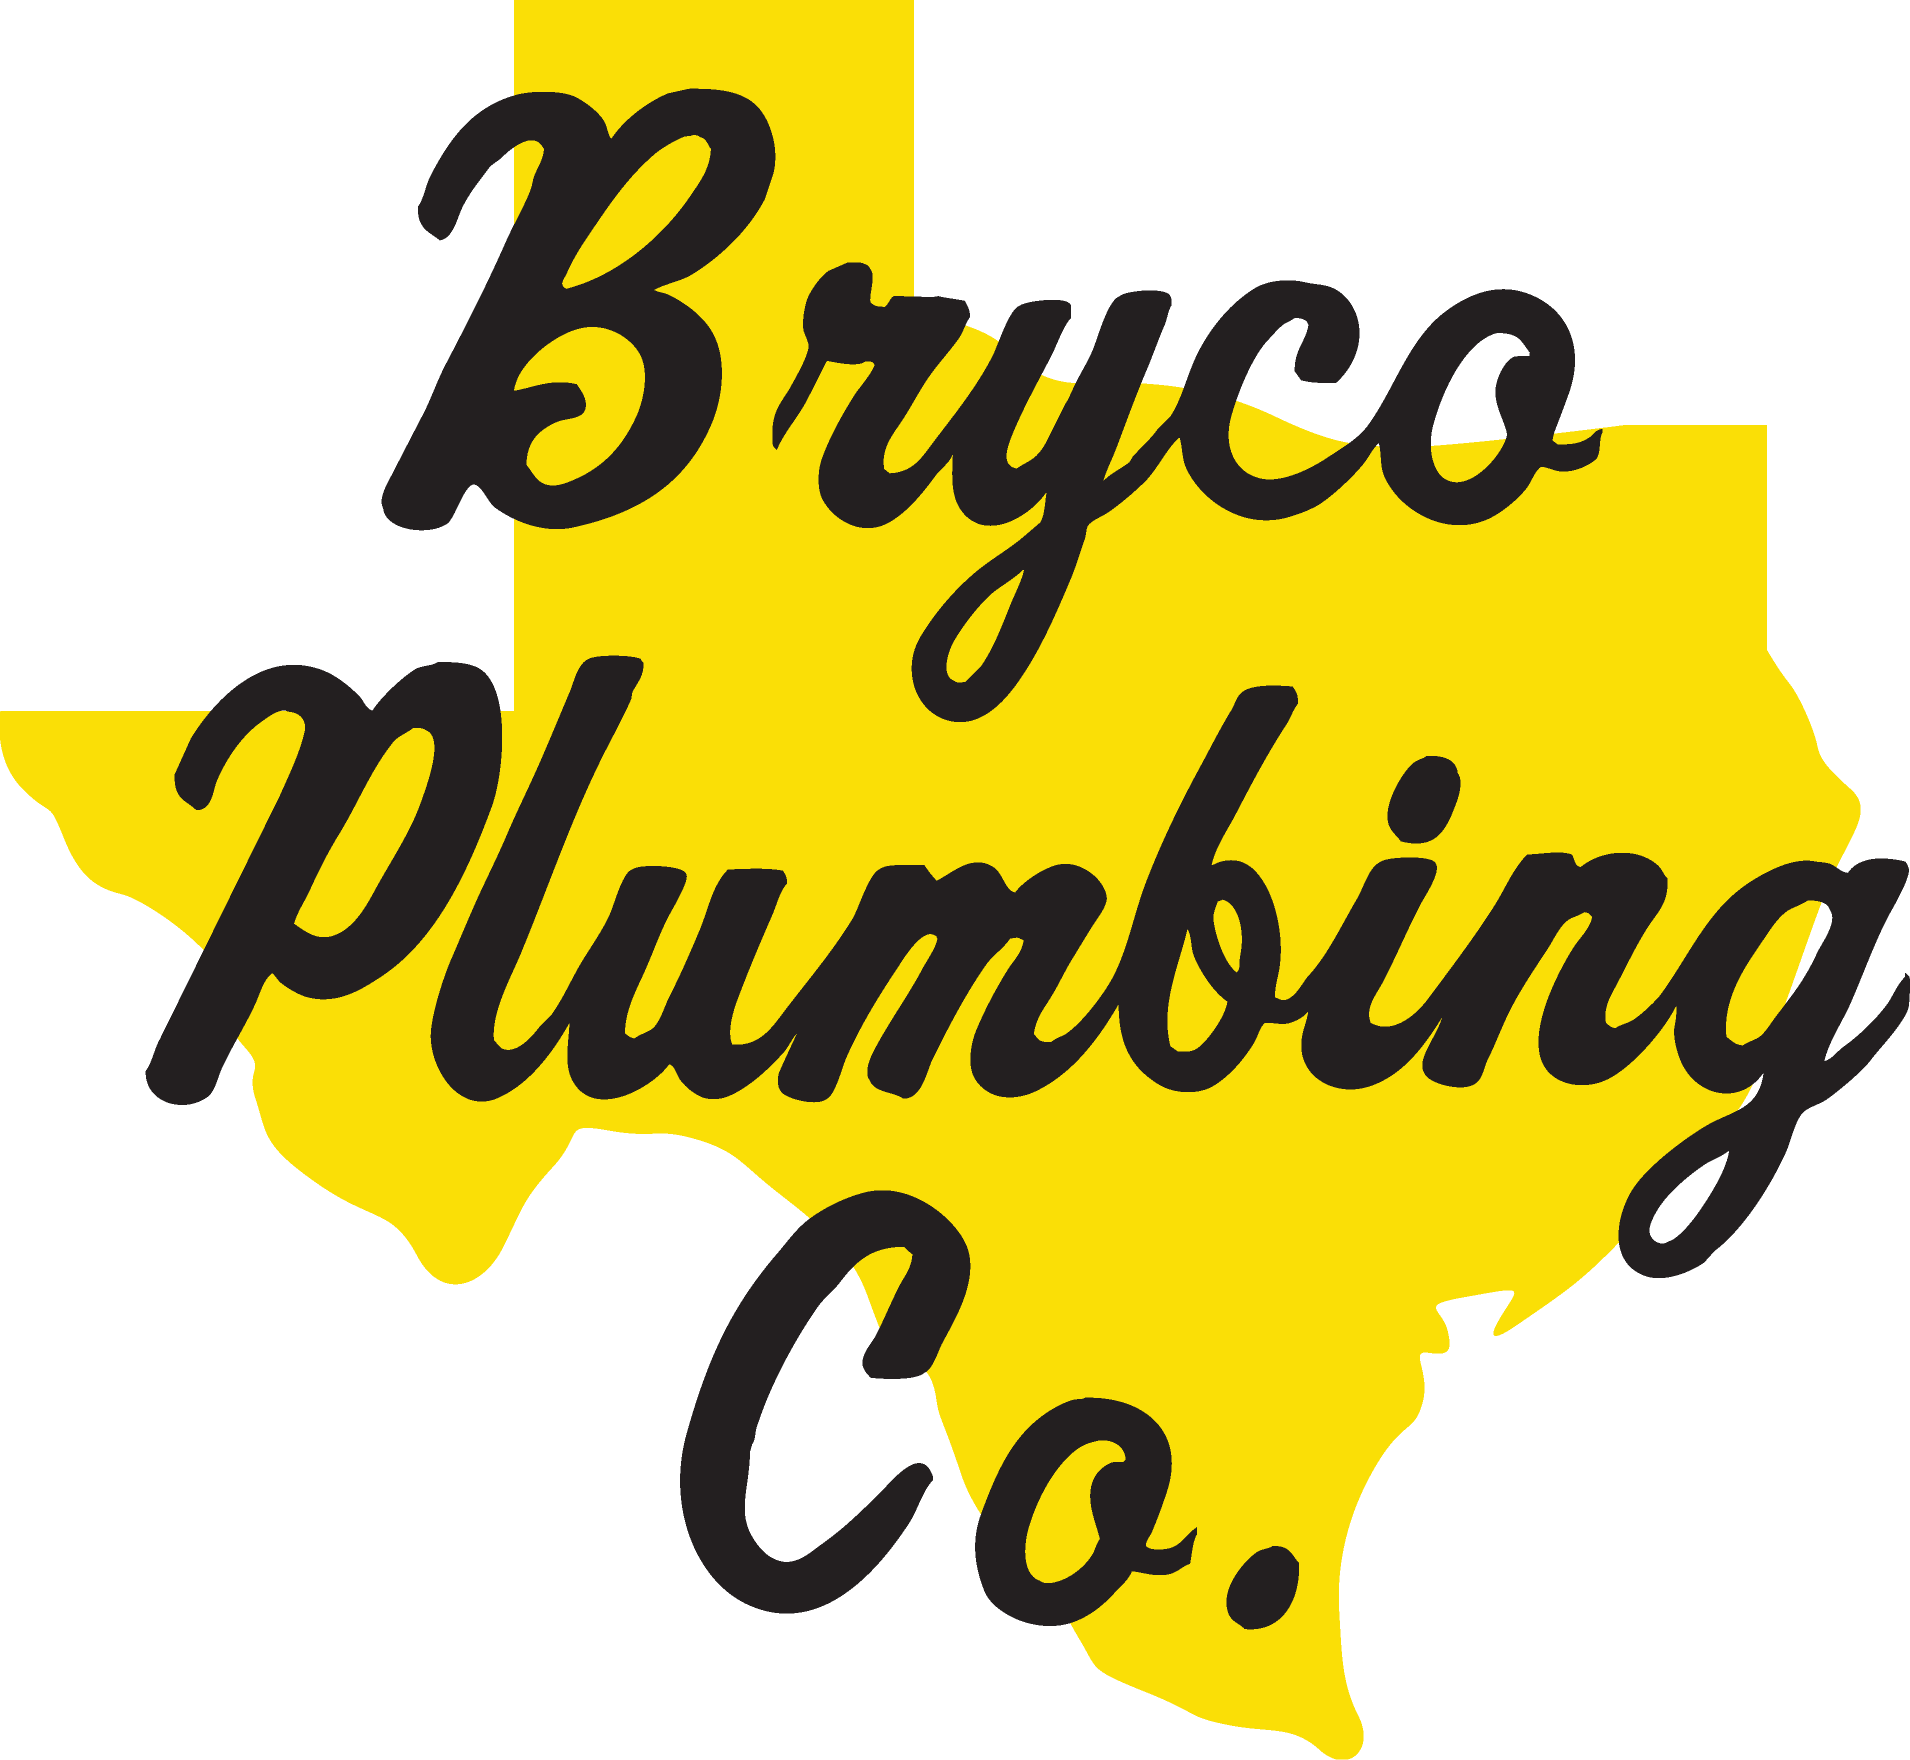 image-of-bryco-plumbing-co-logo-in-san-antonio